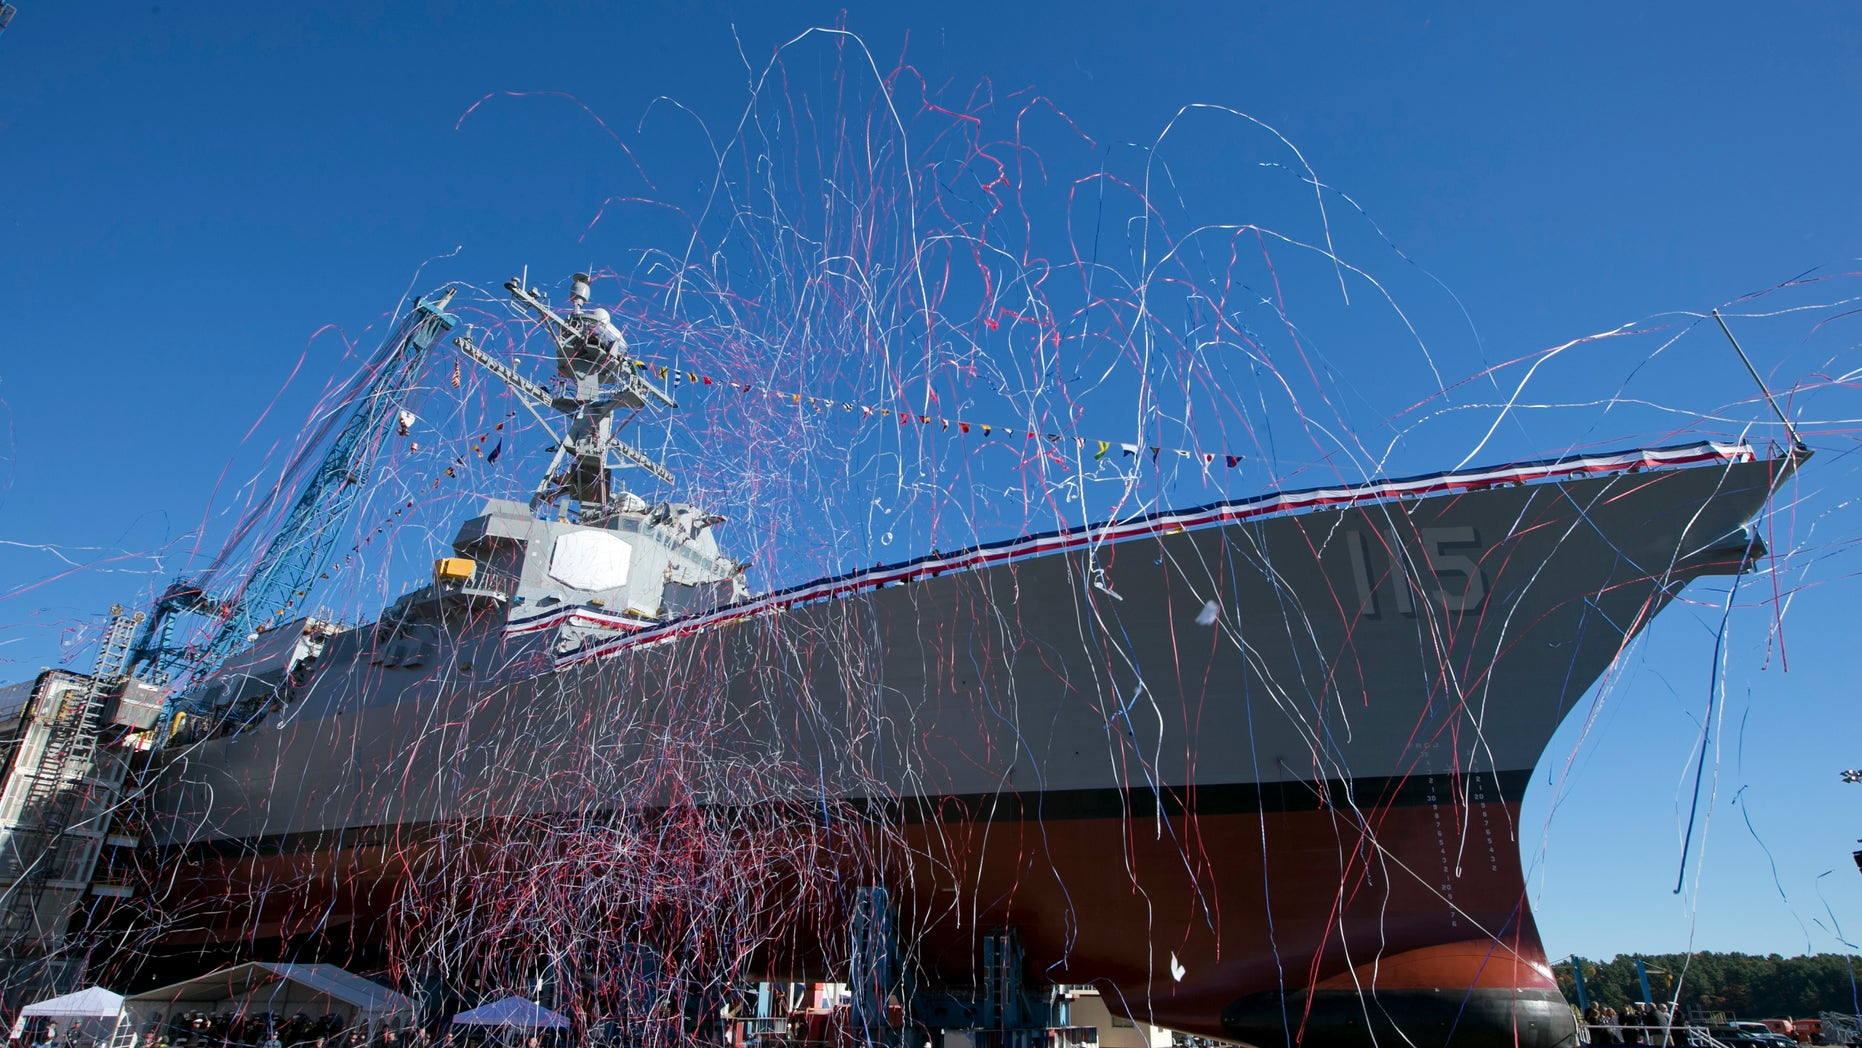 Streamers fly during the christening the USS Rafael Peralta on Saturday, Oct. 31, 2015, in Bath, Maine